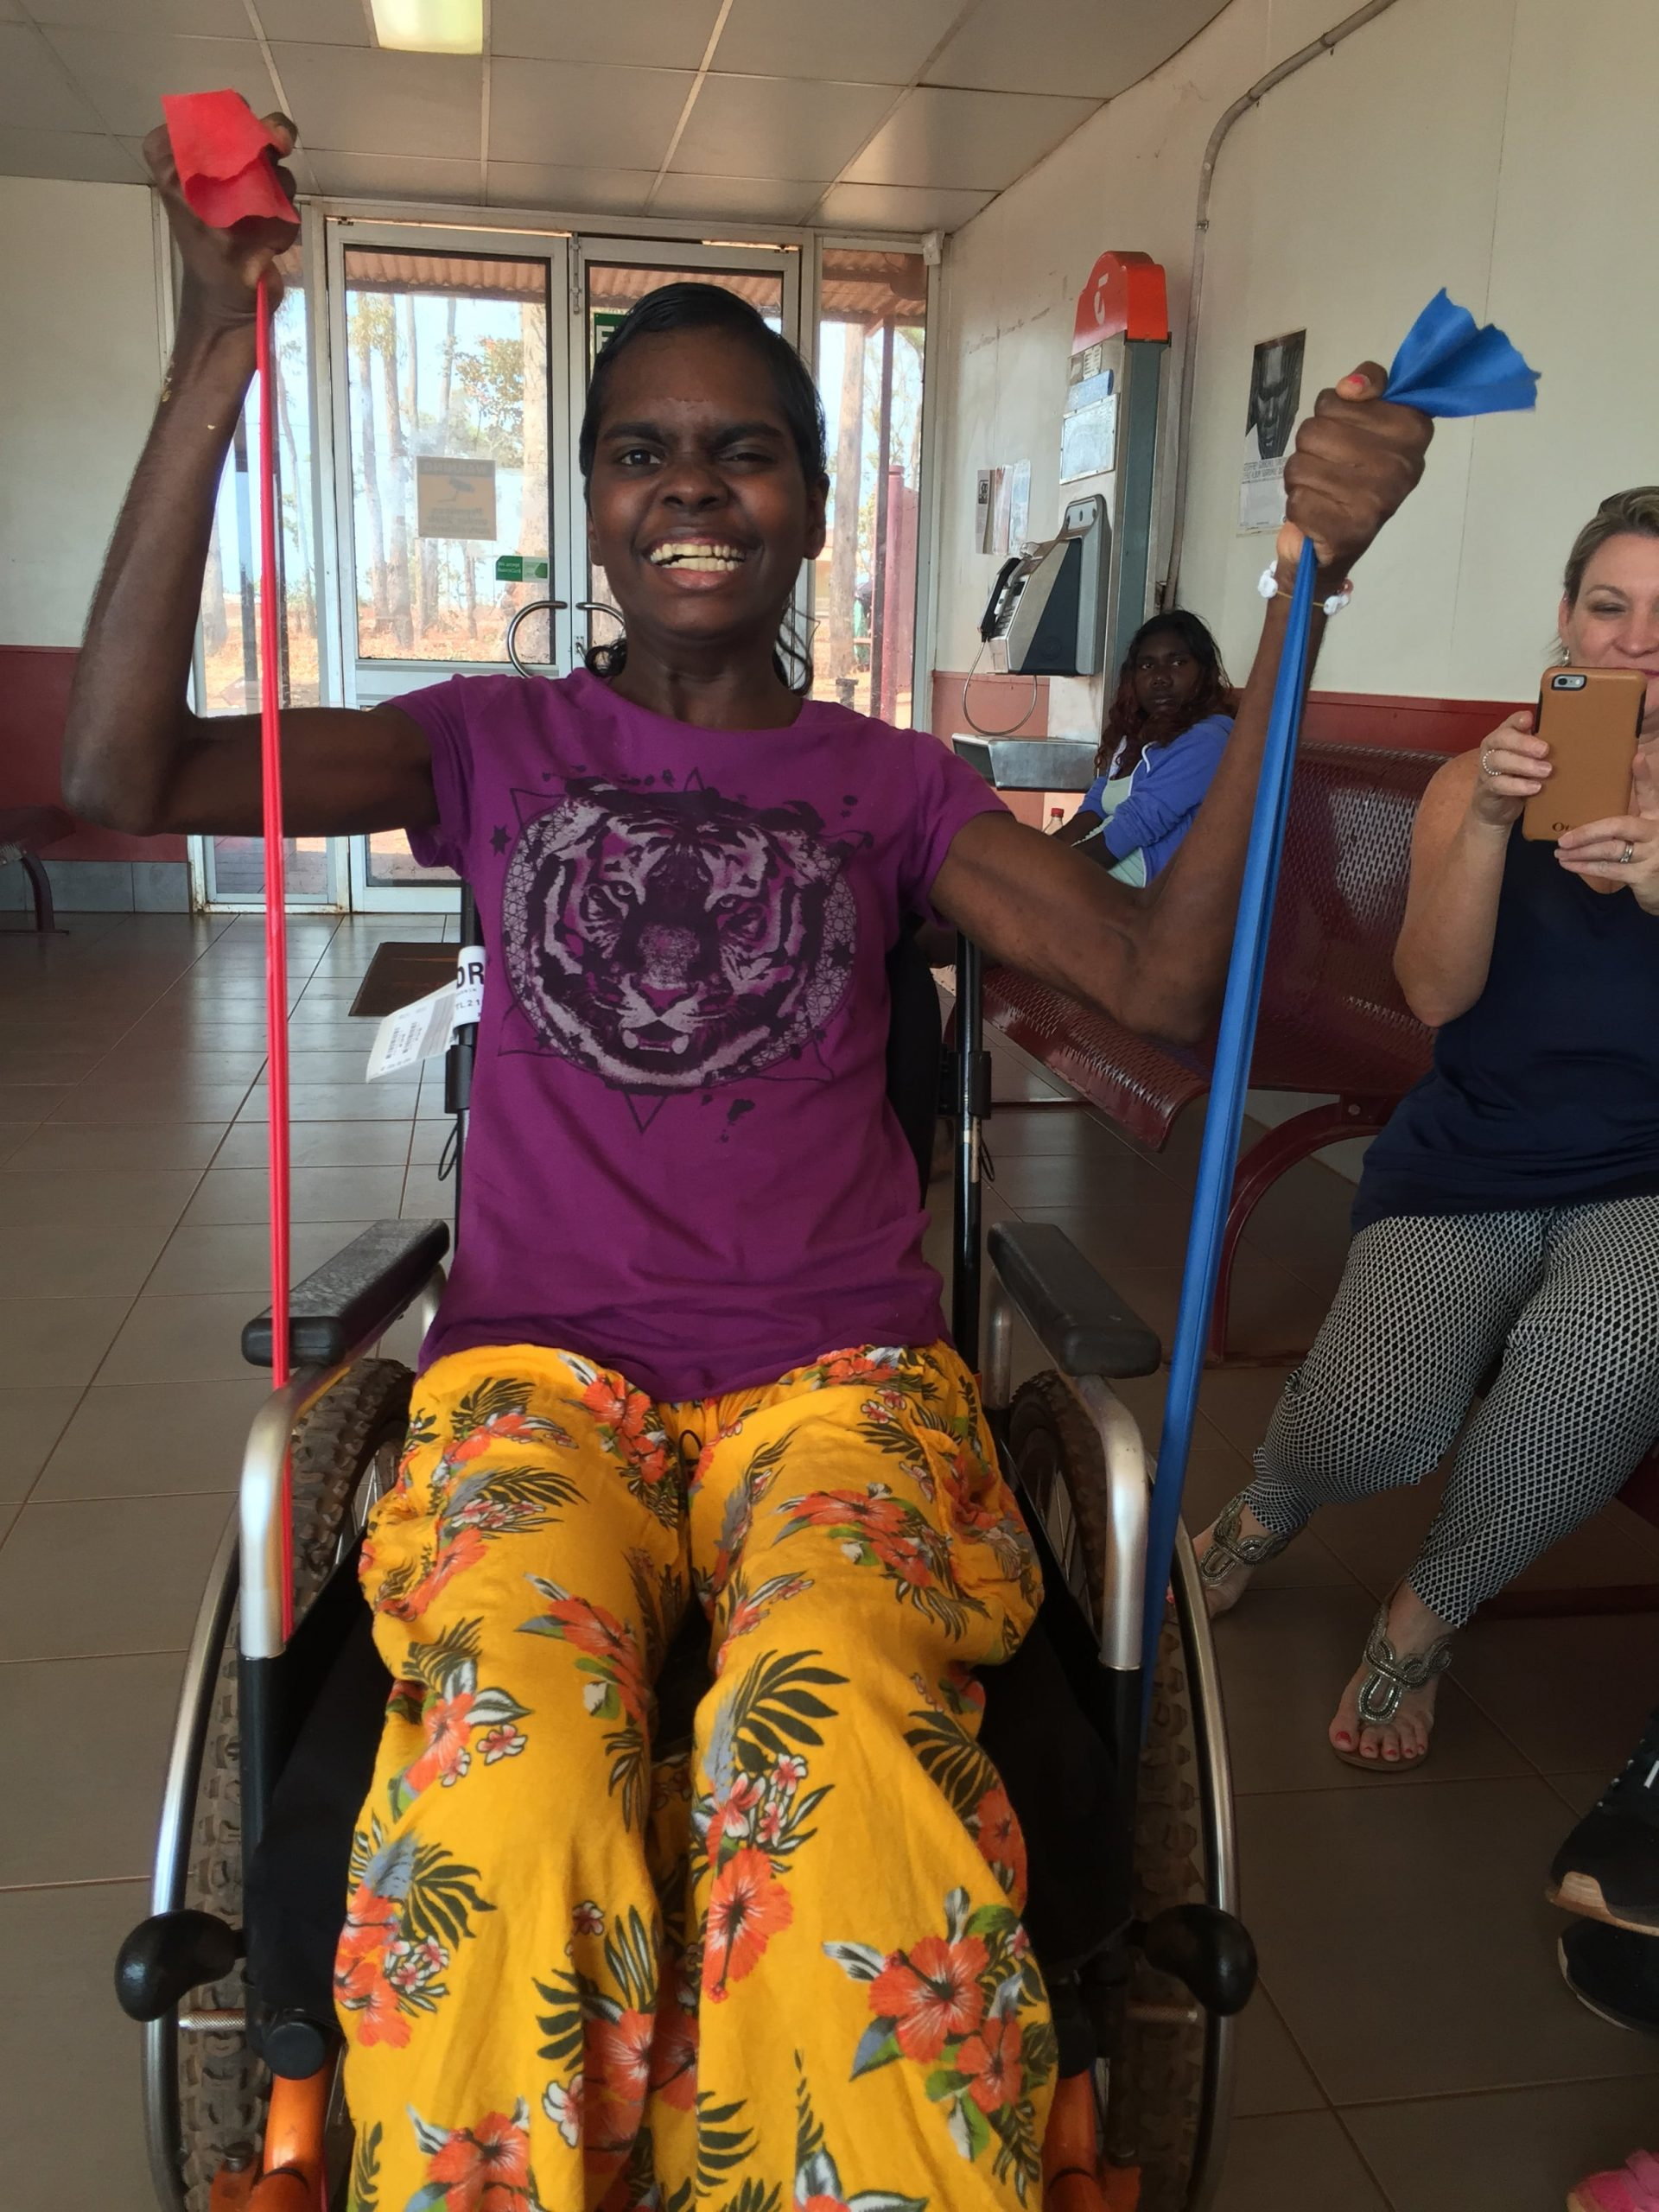 Active Performance Physiotherapy is an accredited National Disability Insurance Scheme provider working with indigenous Australians in remote communities living with disabilities in order to improve their quality of life